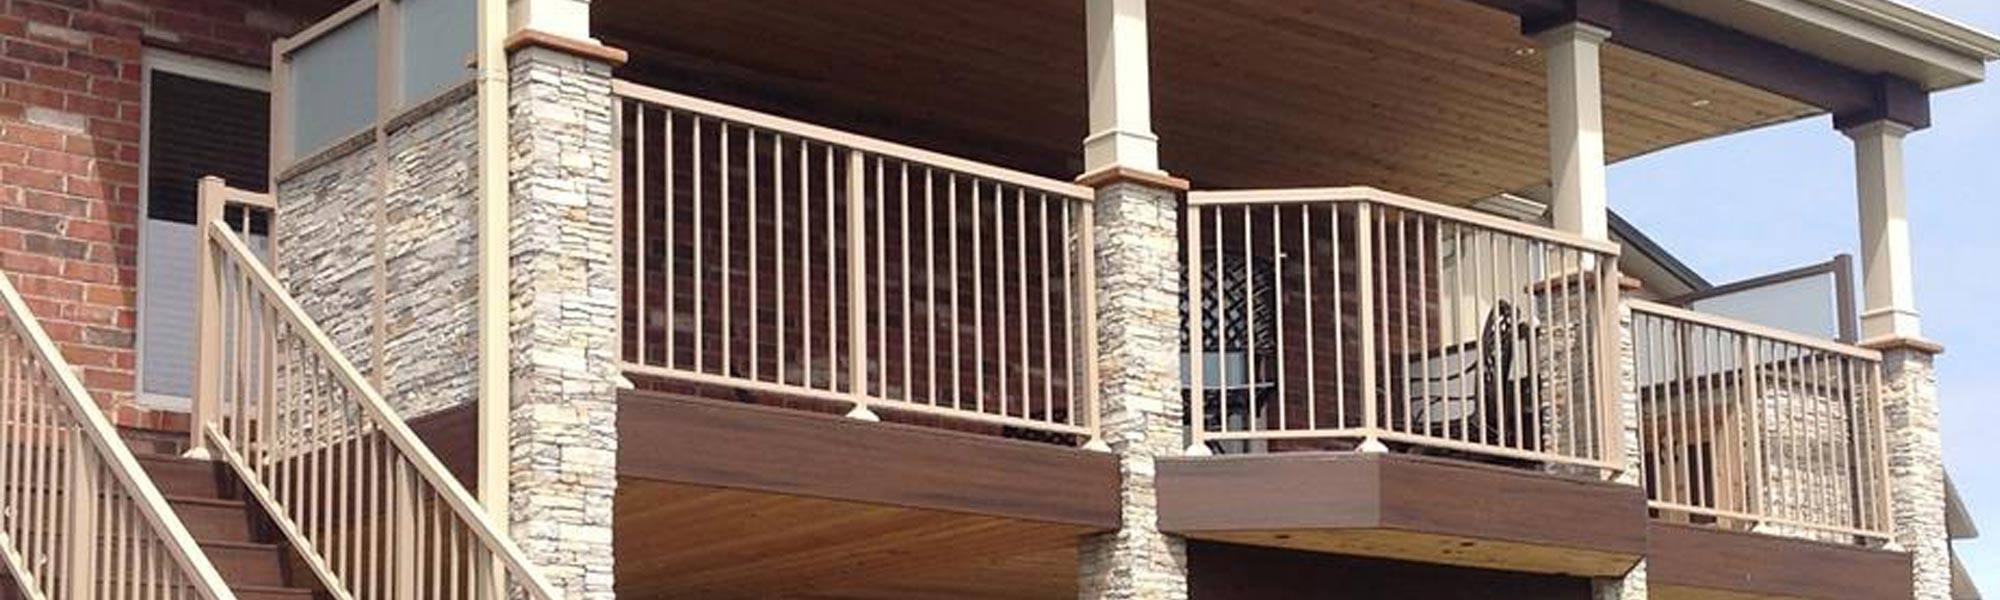 custom wood deck building ontario